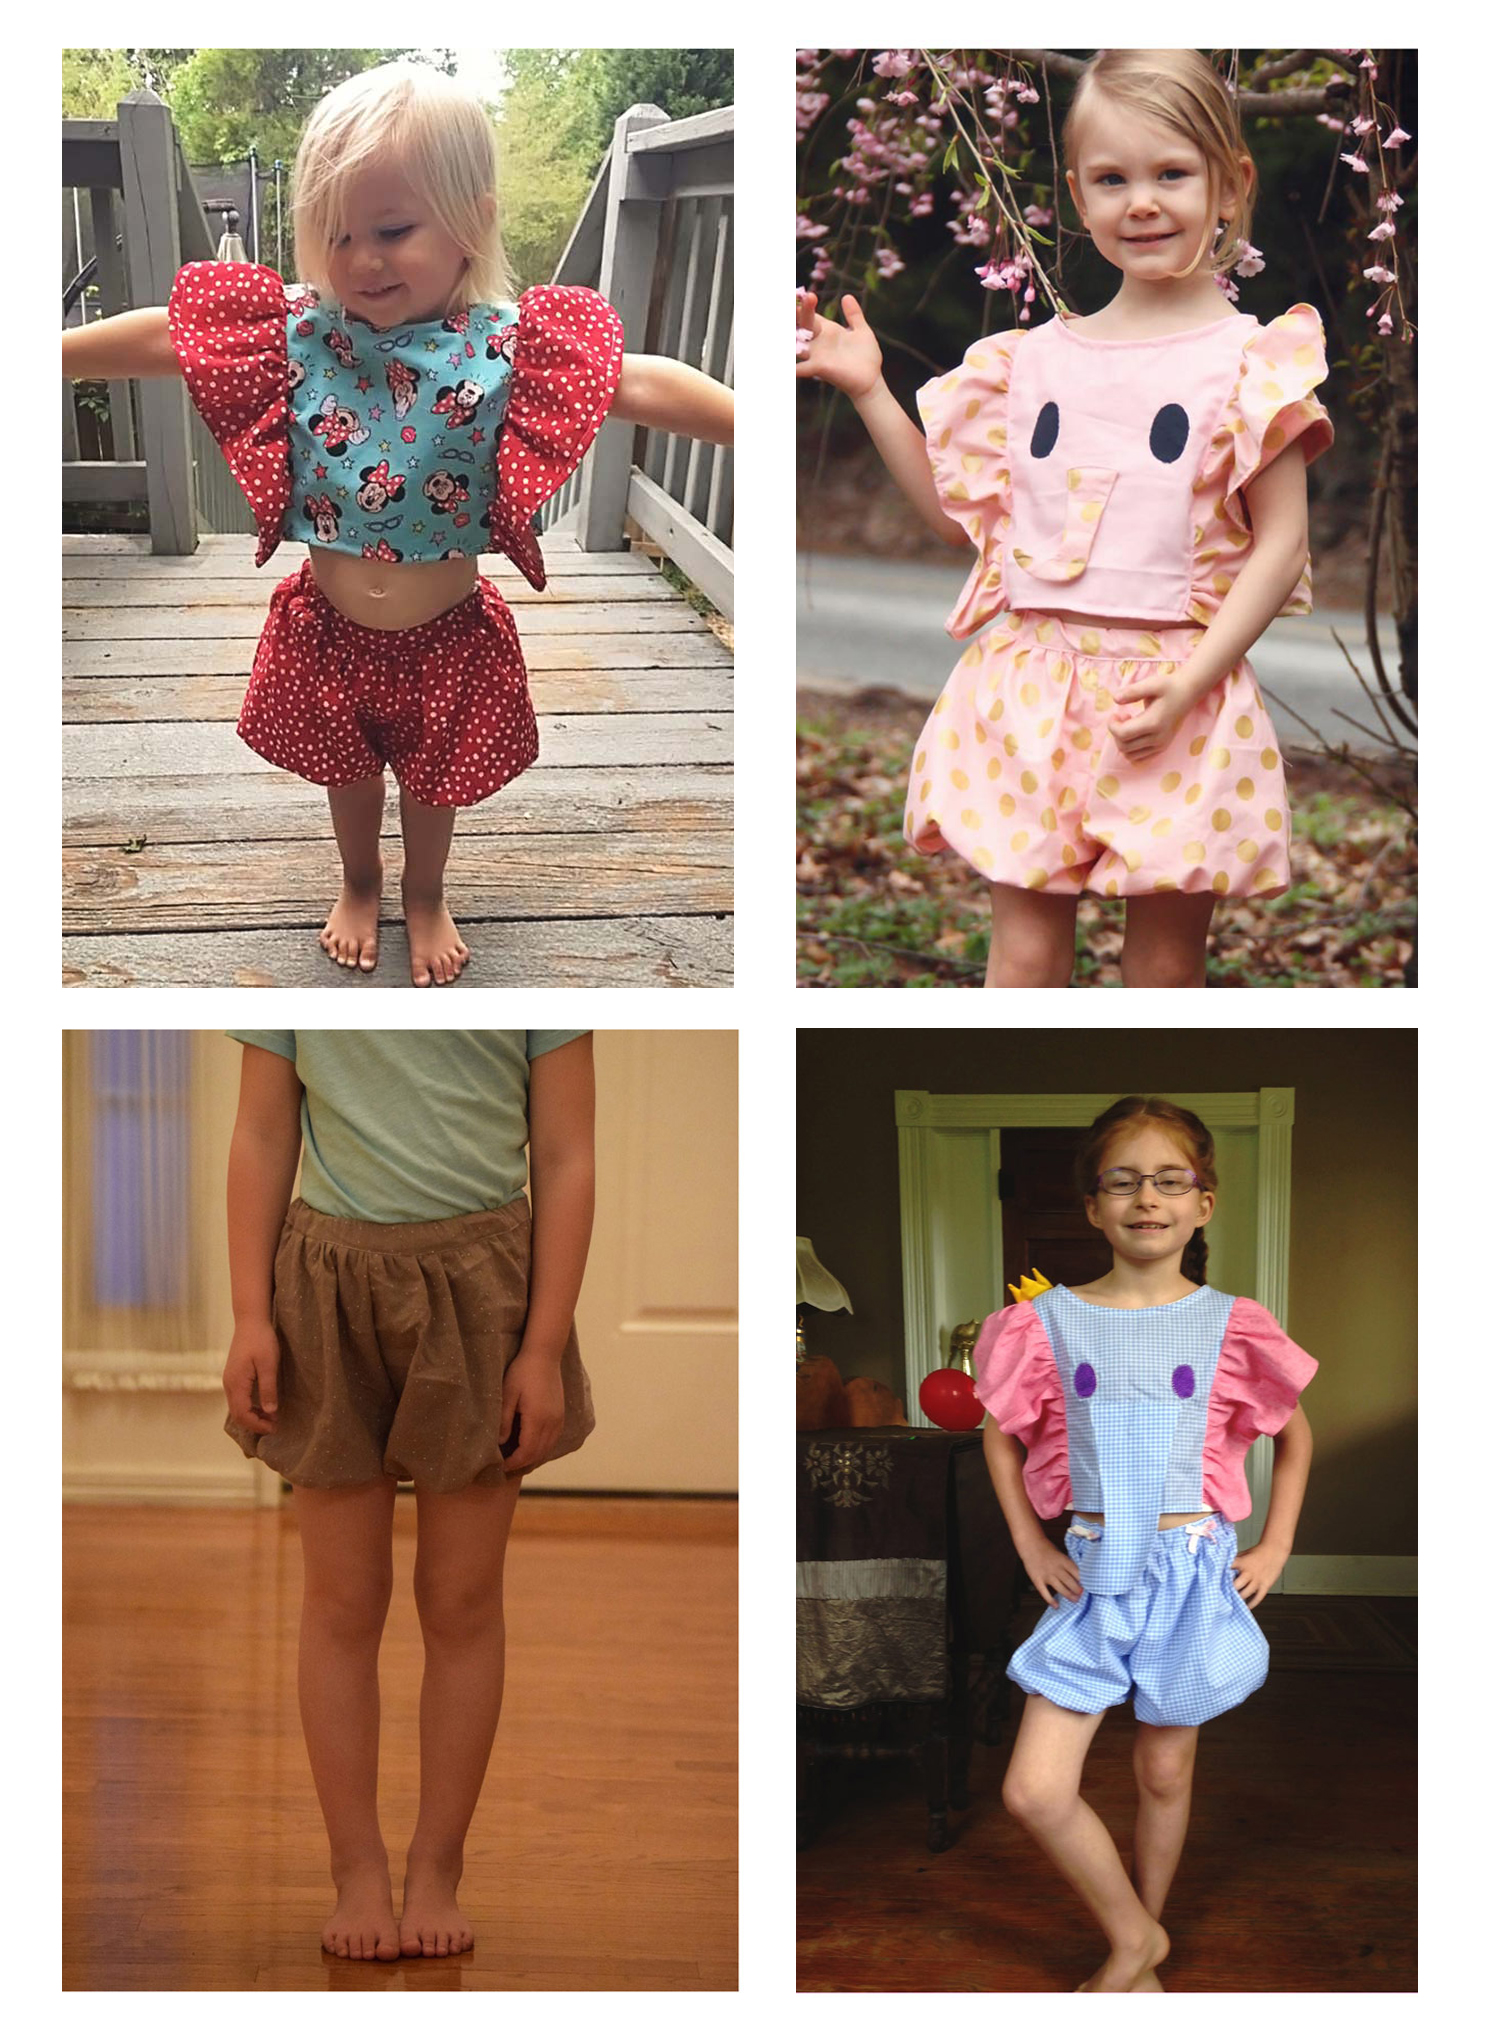 tester photo credits   top left: Lindsay, Sweet Bean Boutique   top right: Lore, Five Blessings Boutique   bottom left: Rachel, Once Upon a Sewing Machine   bottom right: Joyce